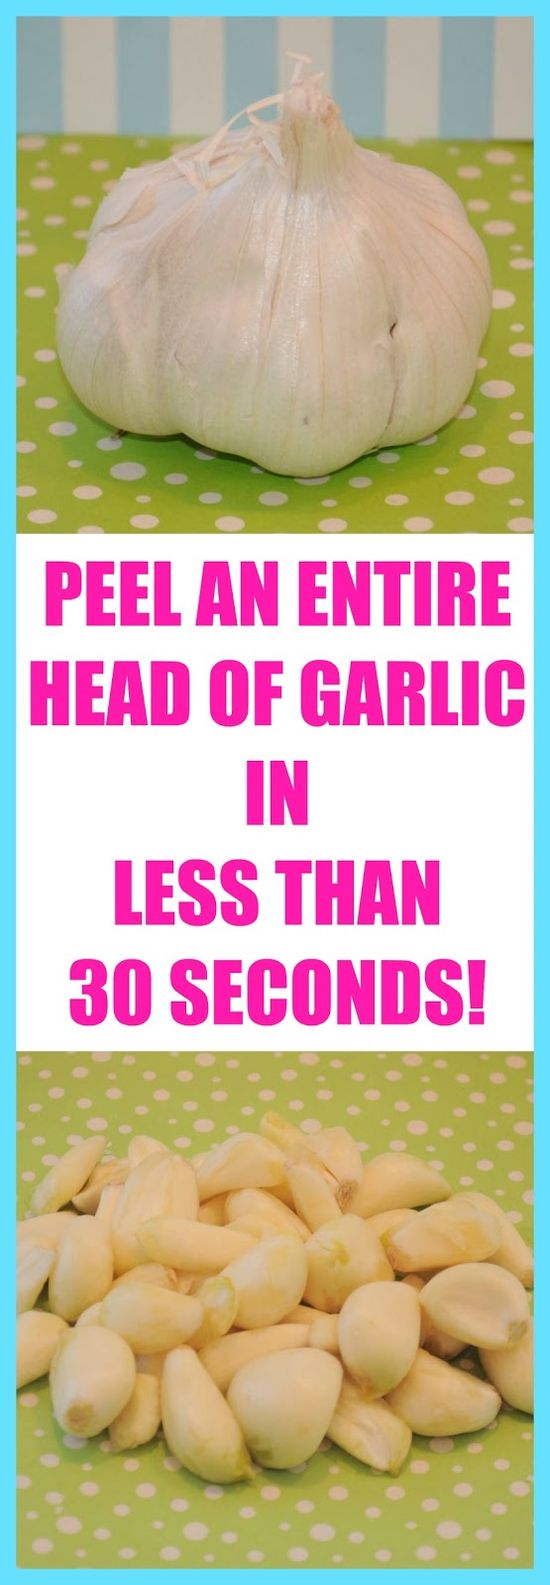 Holiday Sparkle: The Fastest way to peel garlic!...peel an entire head in less than 30 seconds, no tools required...basically like performing a magic trick in your kitchen!